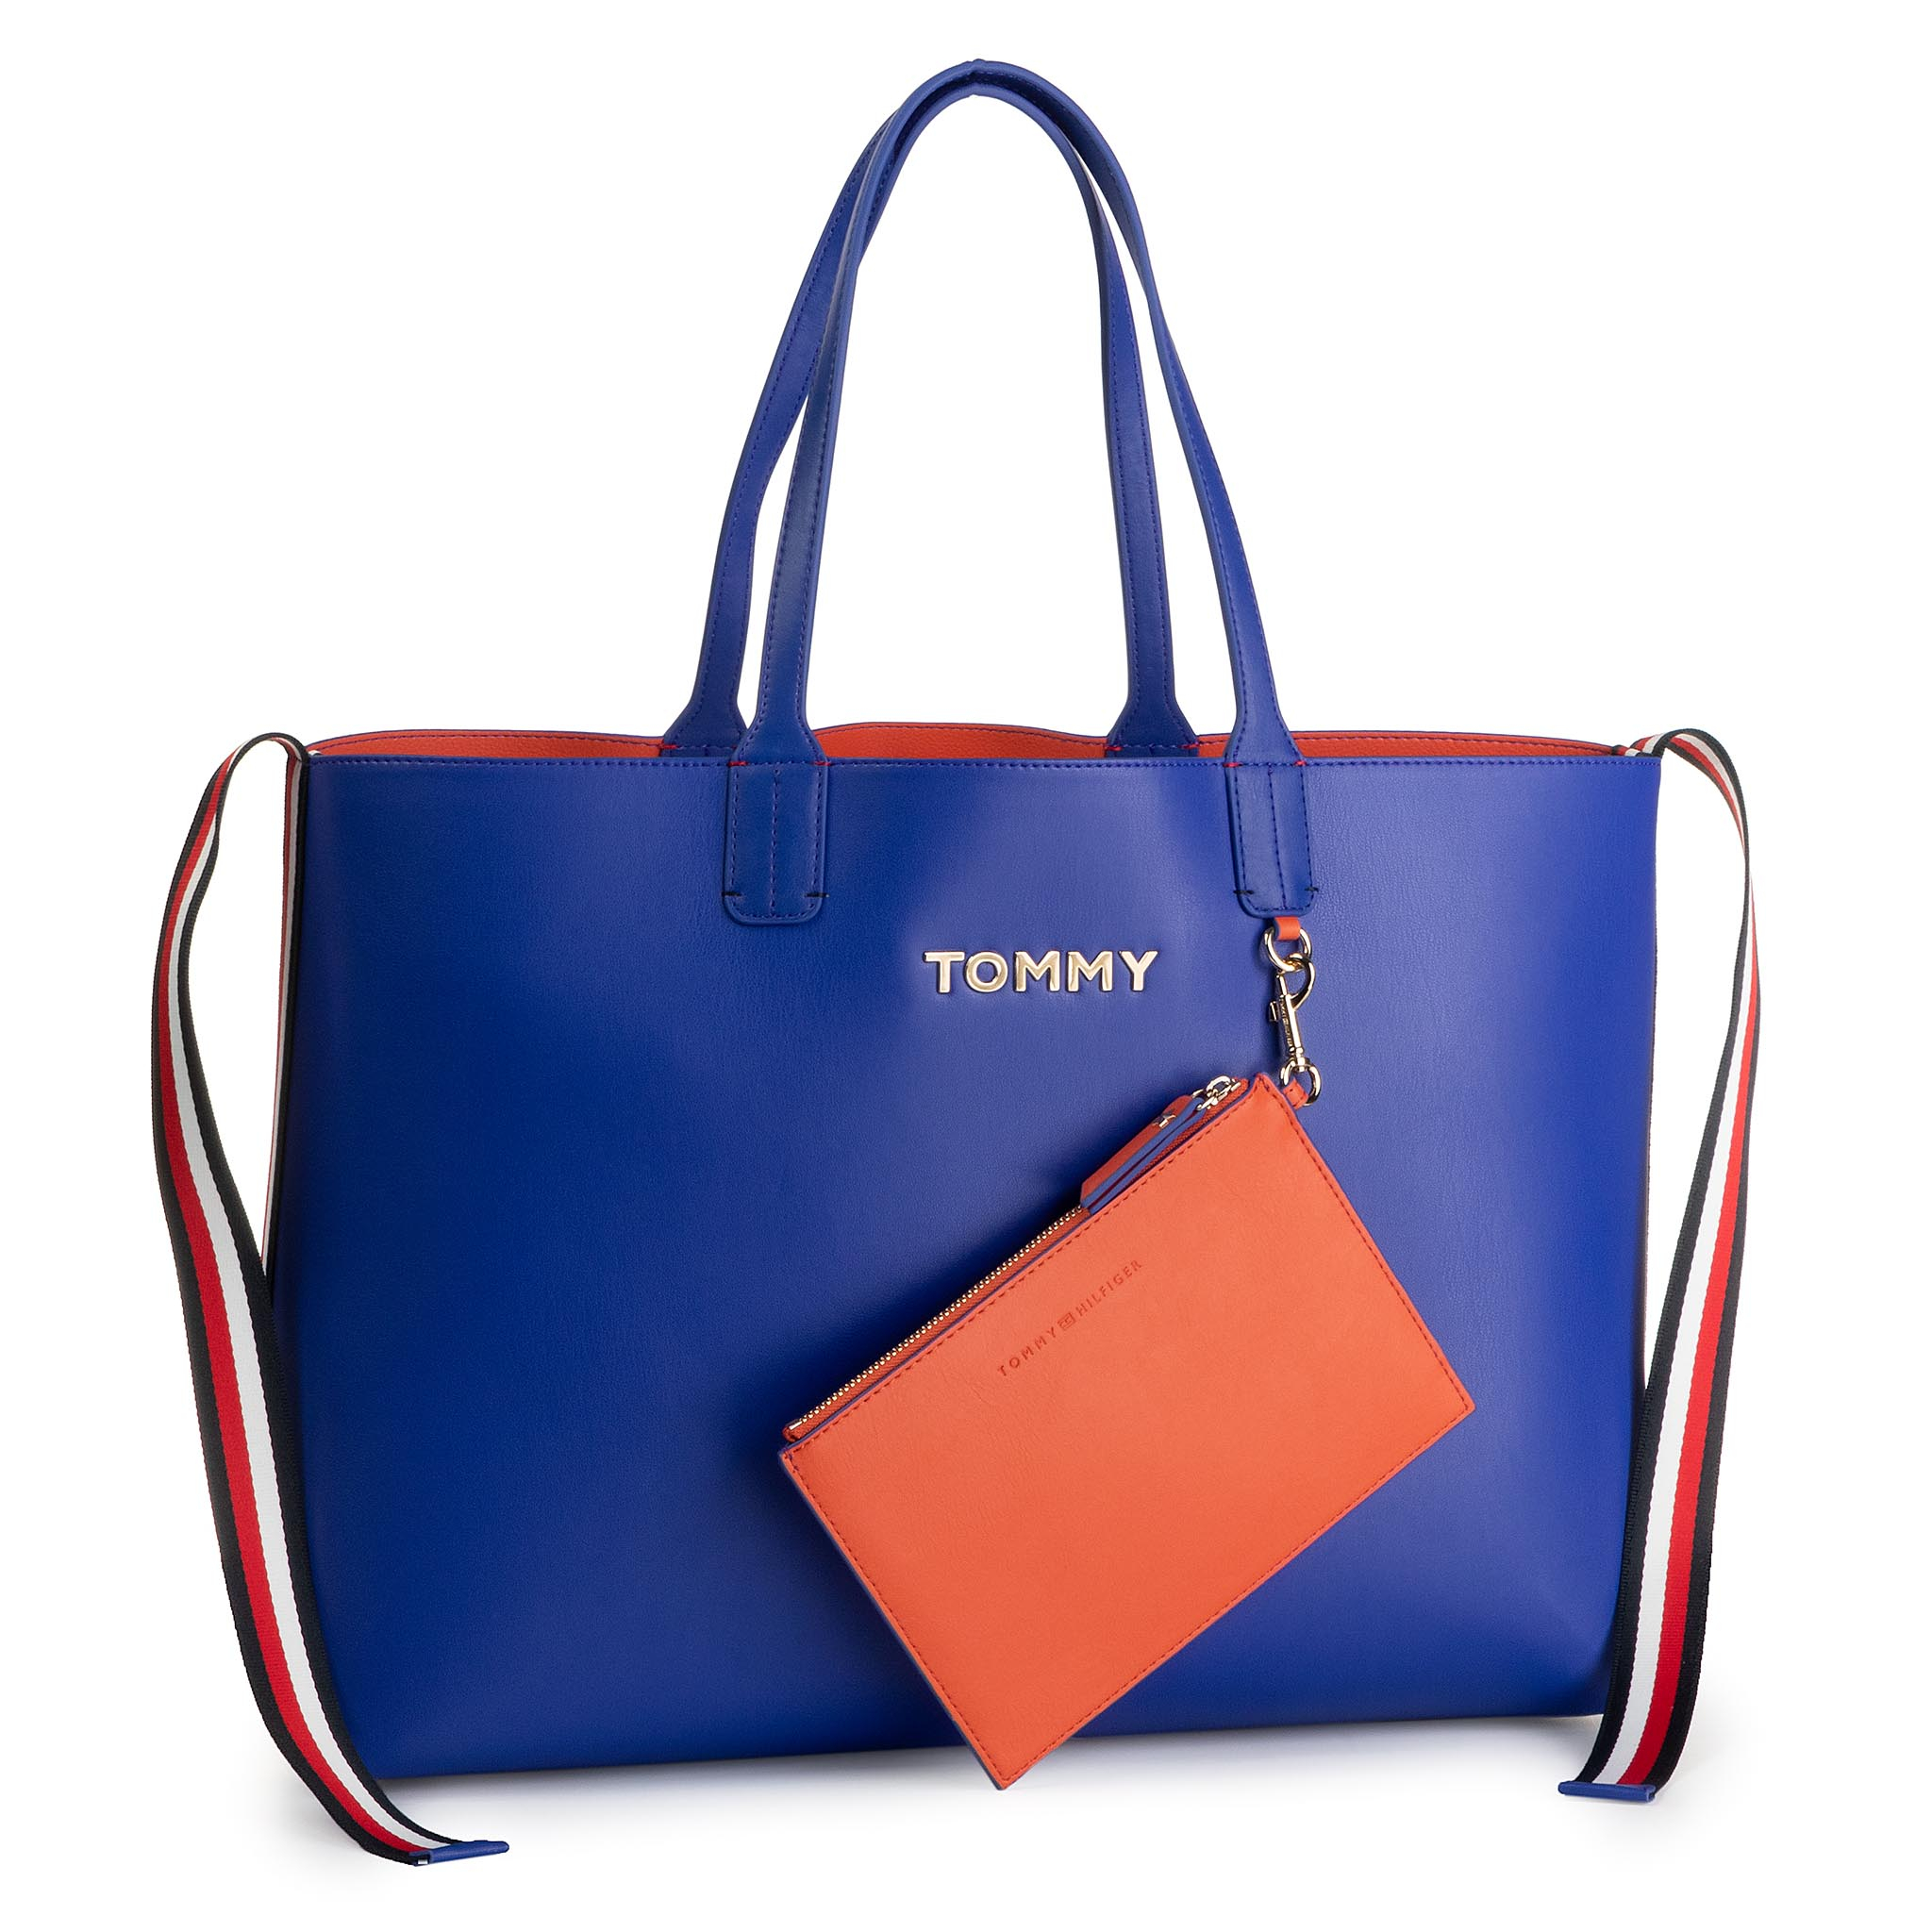 4bac898826 Kabelka TOMMY HILFIGER - Iconic Tommy Tote AW0AW06833 902